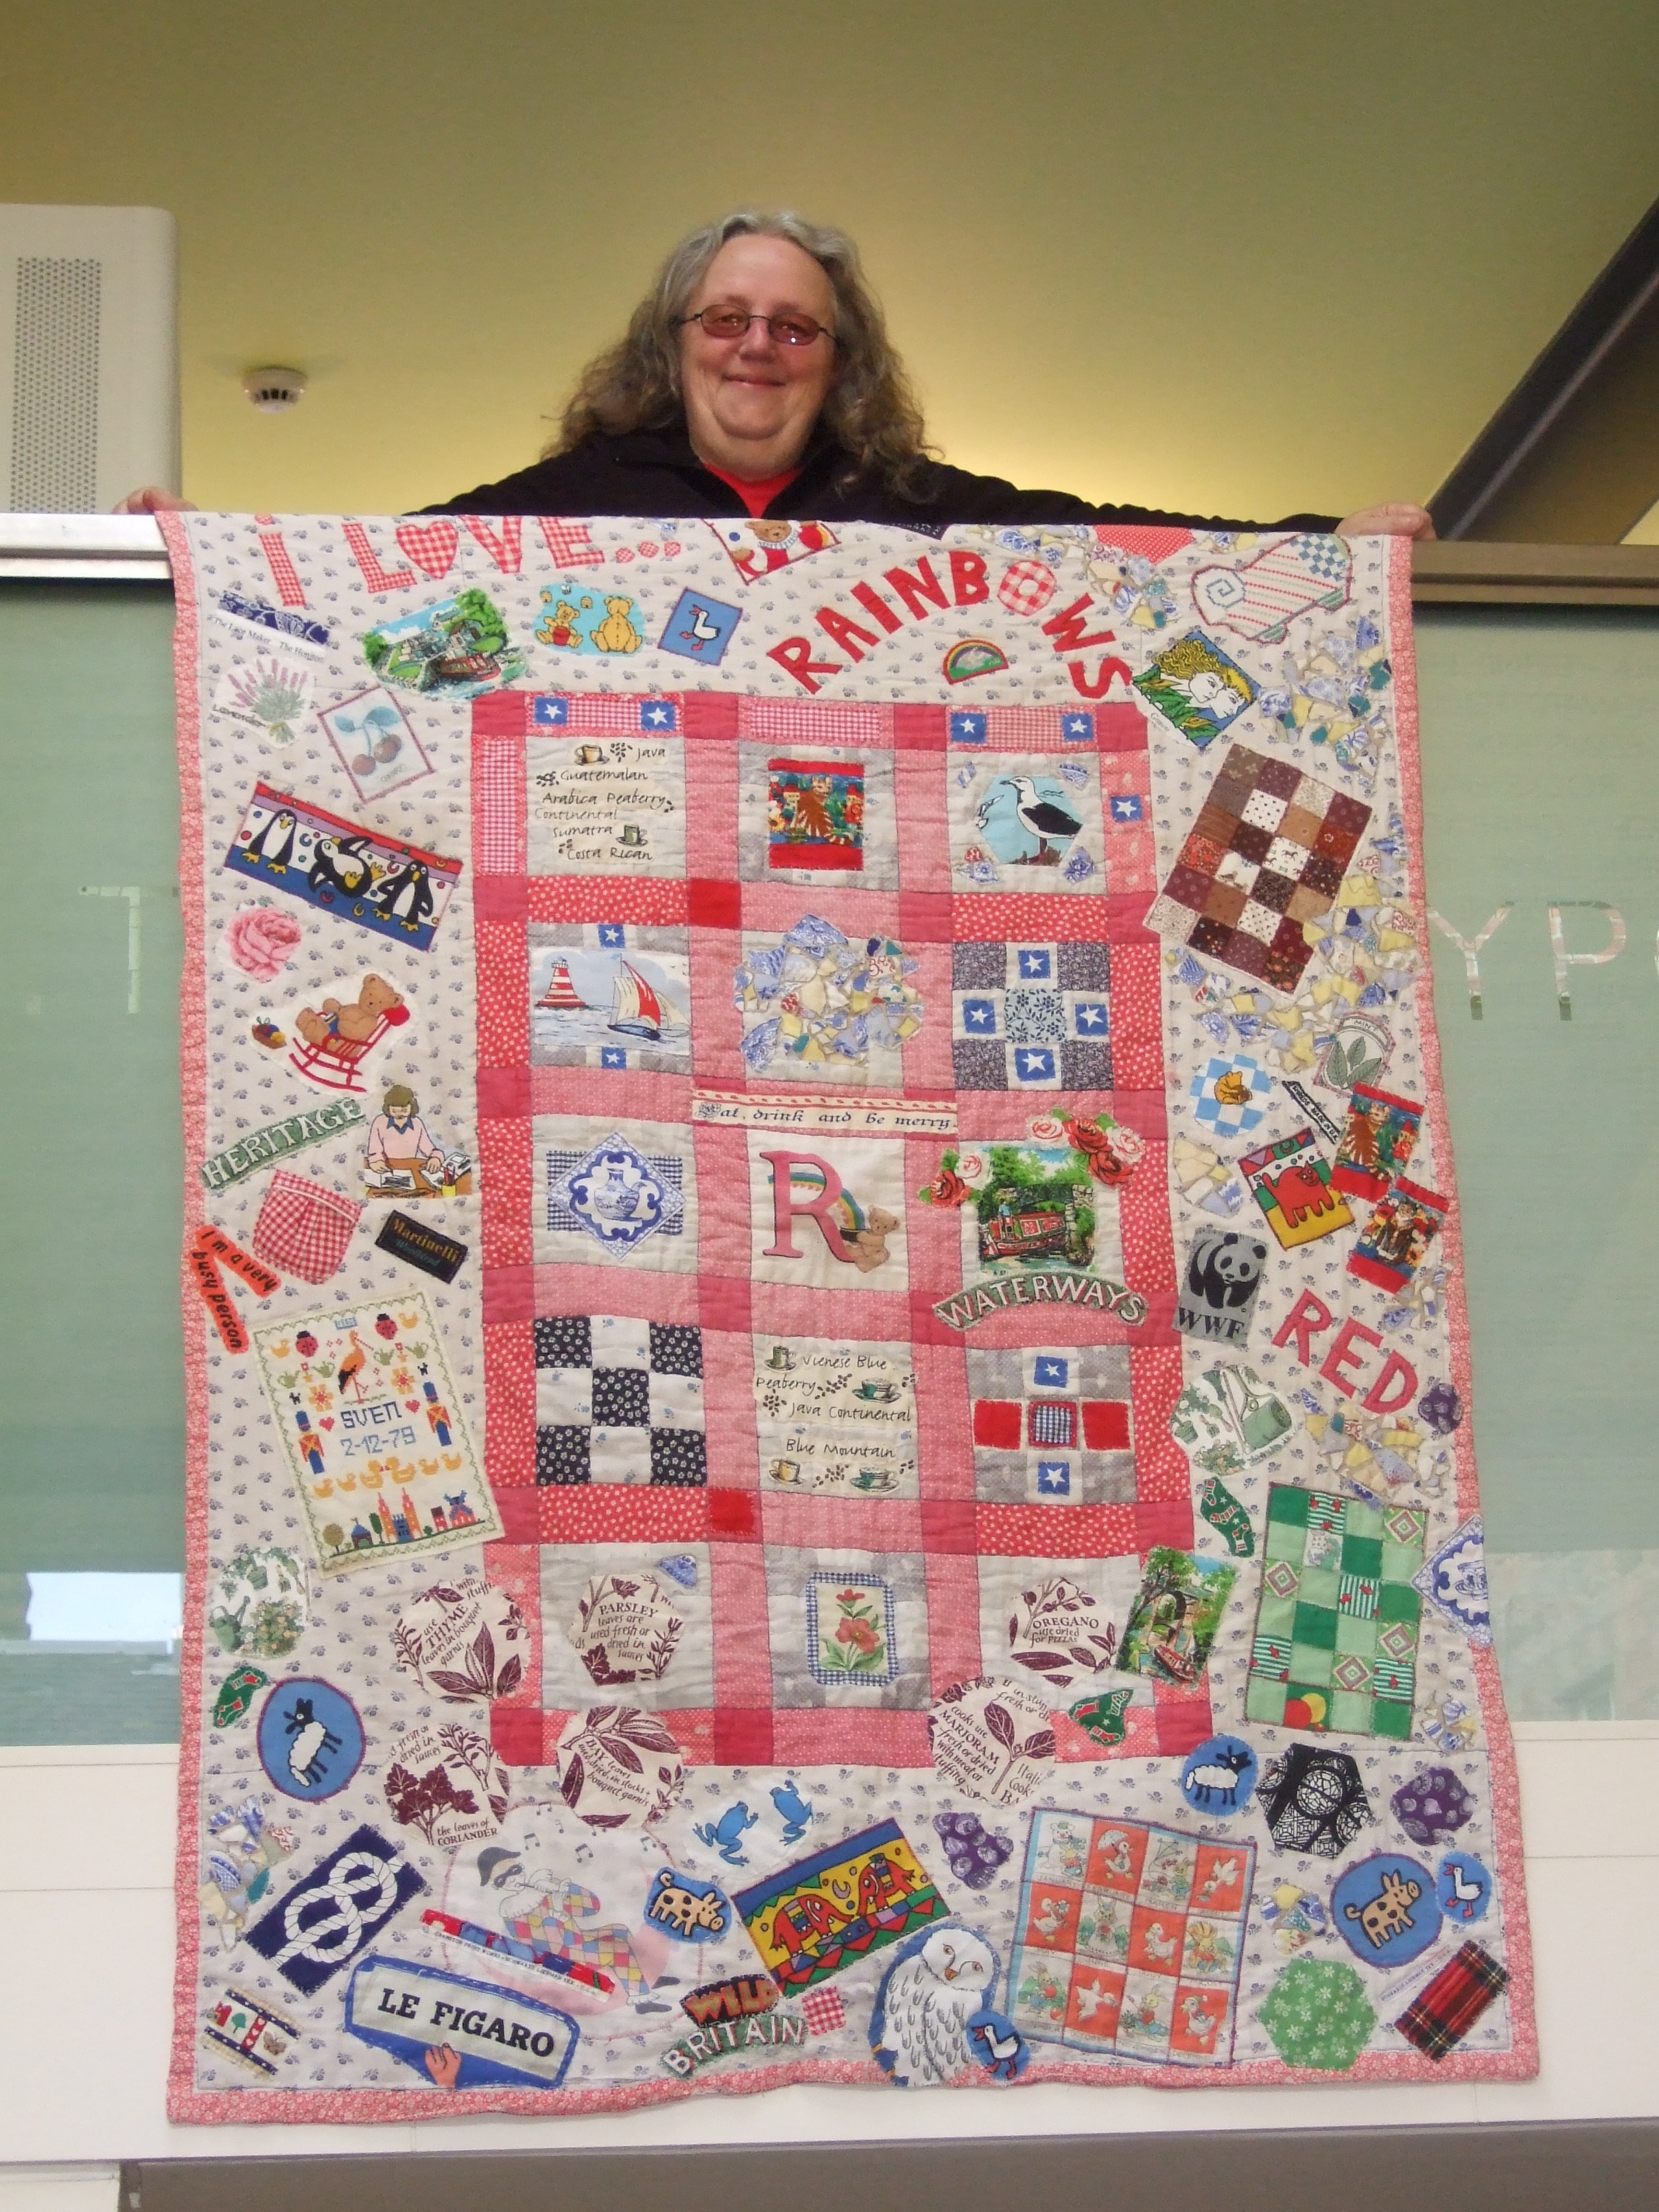 Feel good poems | Our sweet old etcetera... : quilting poem - Adamdwight.com